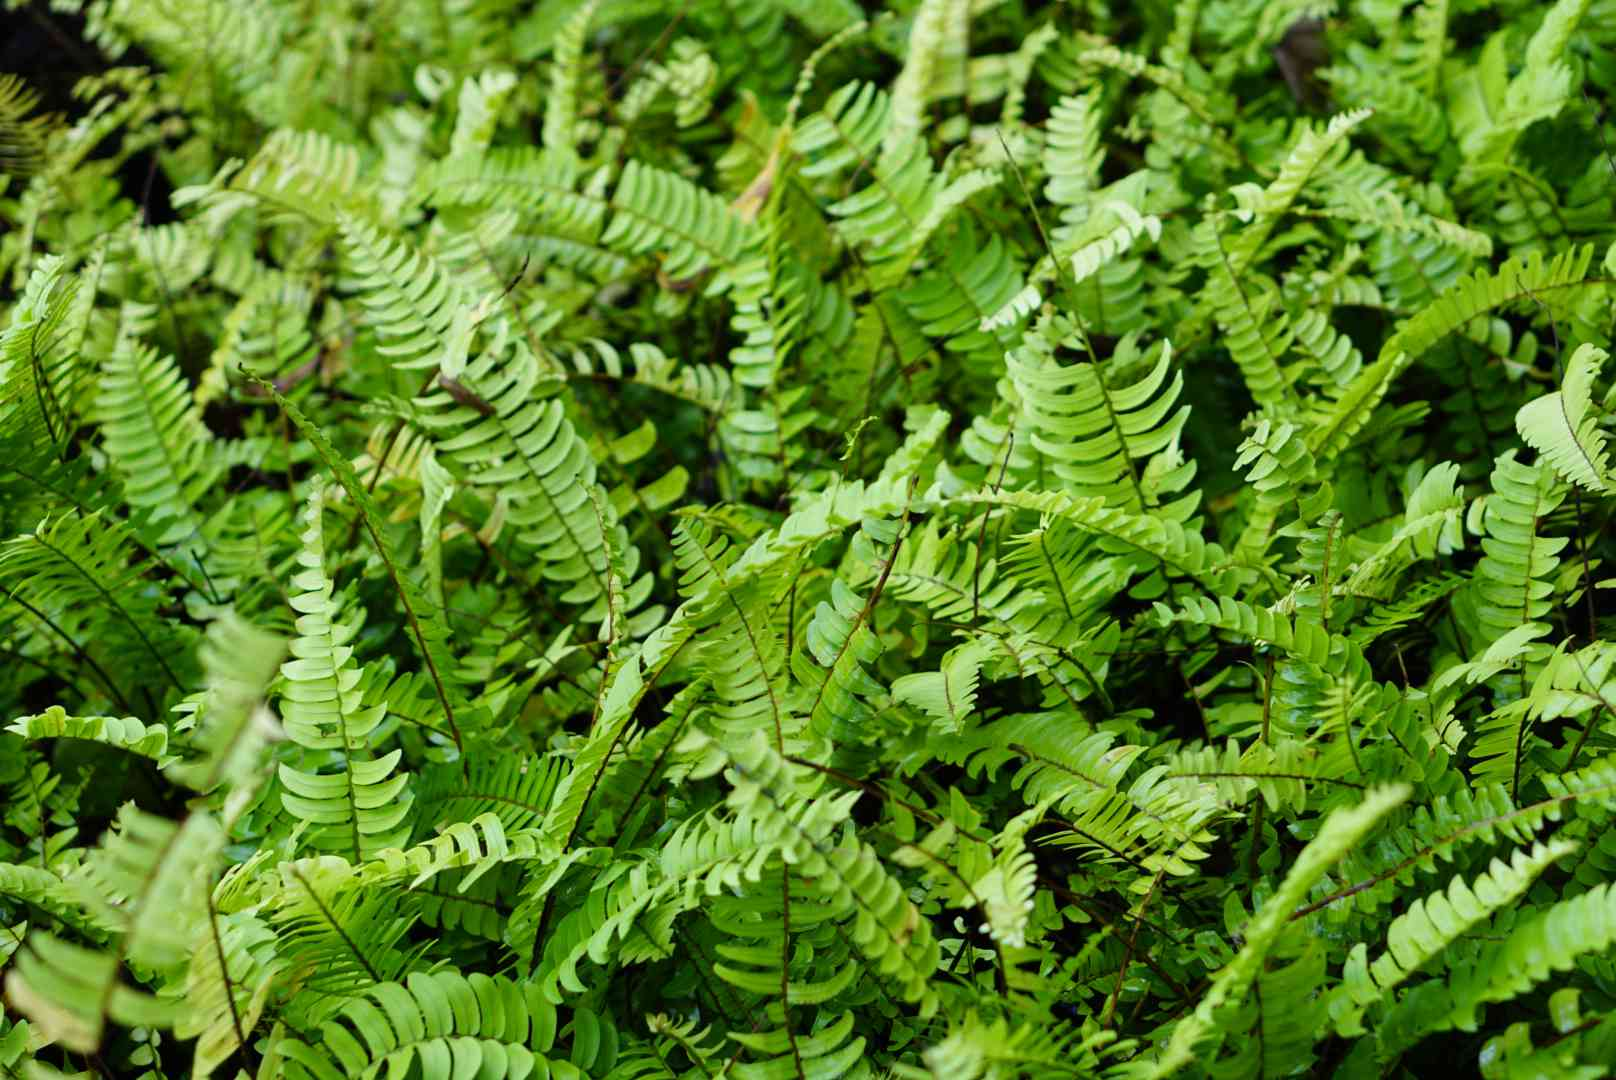 Kimberley queen fern fronds and leaves planted in ground